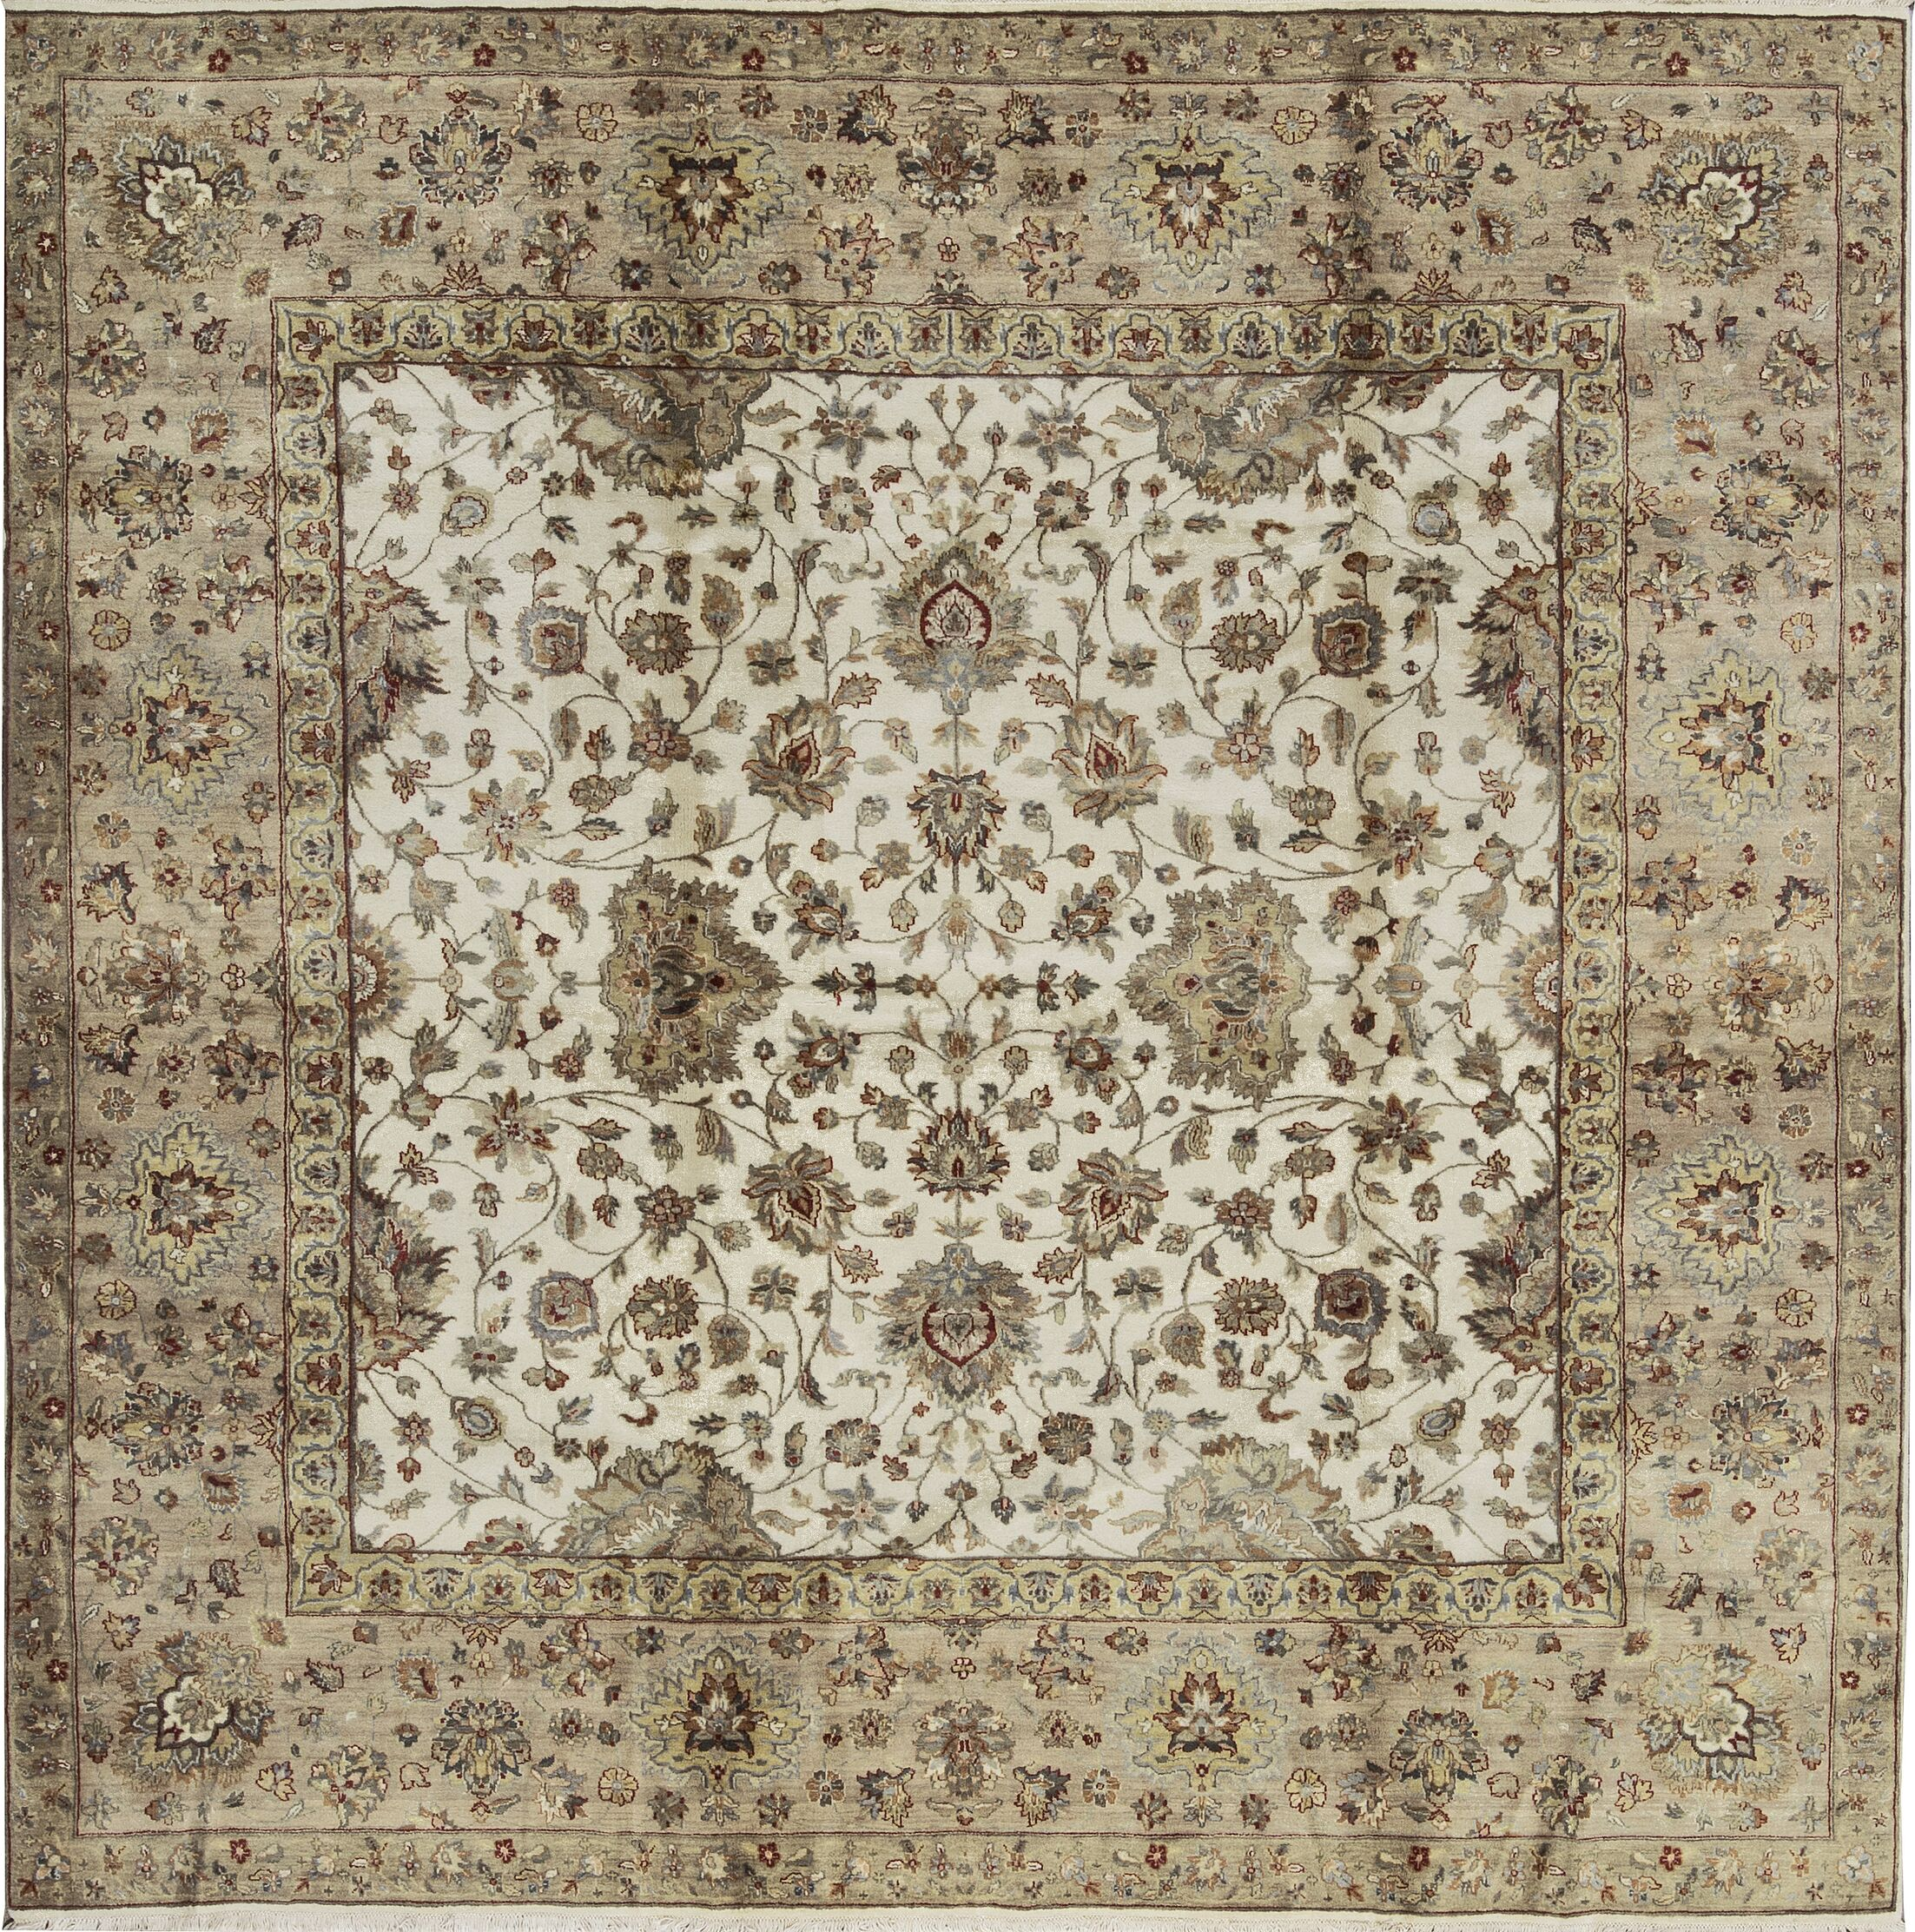 One-of-a-Kind Handwoven Wool Cream/Ivory Indoor Area Rug